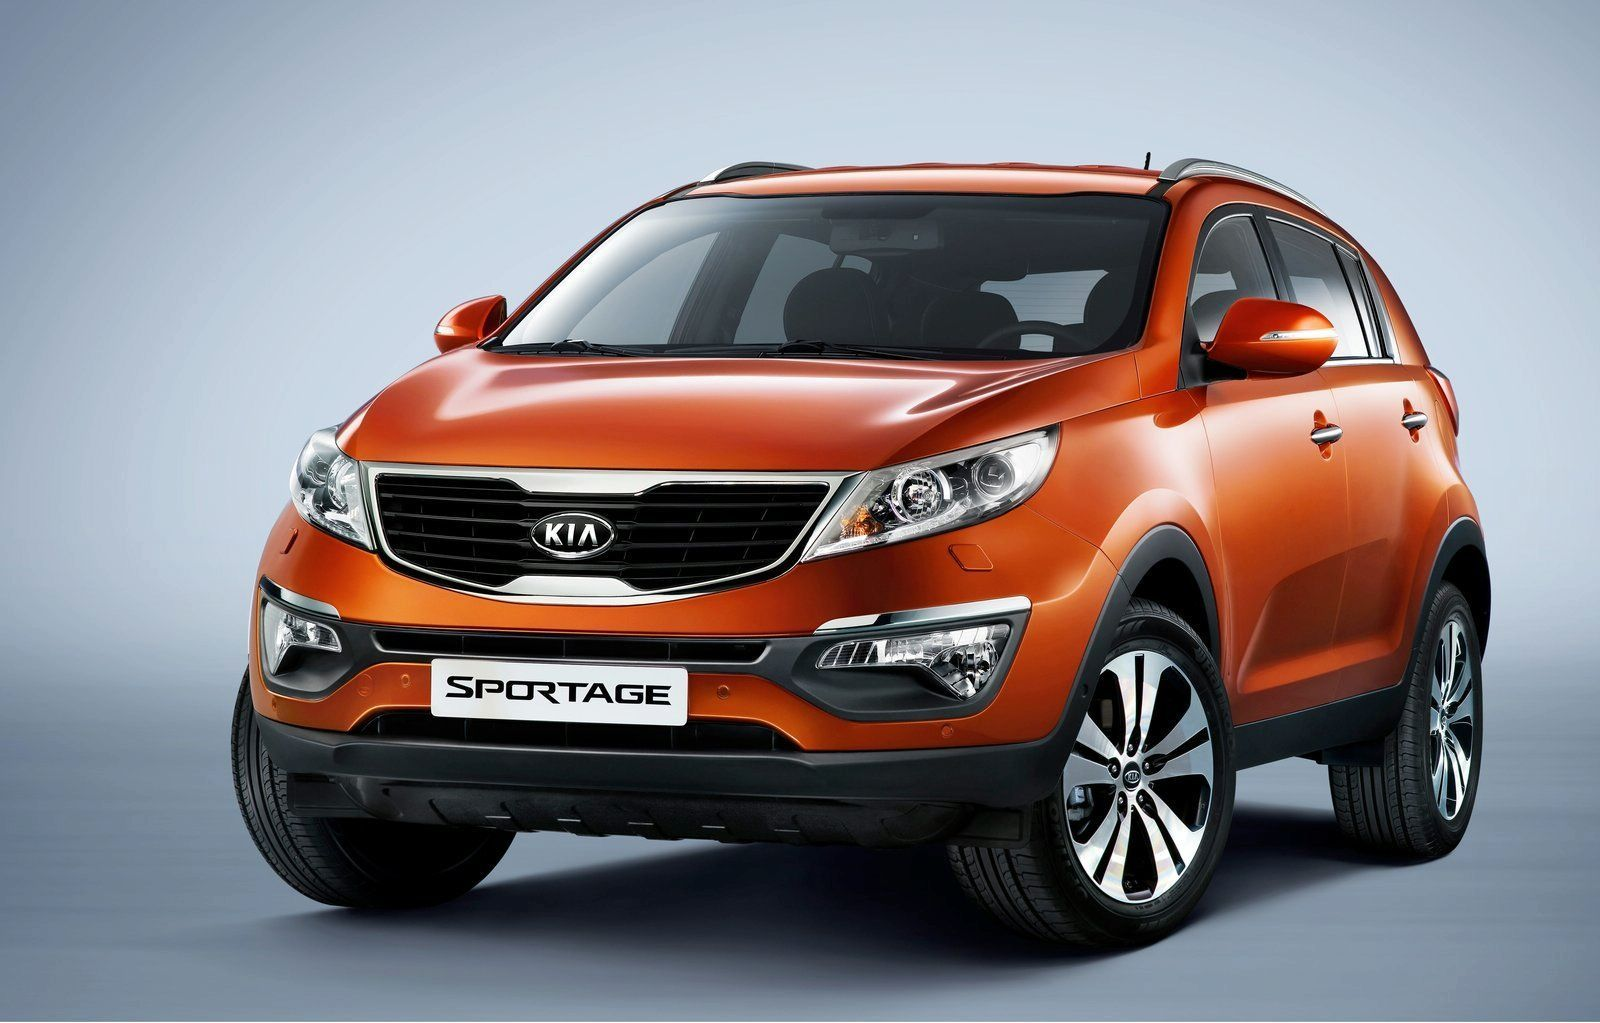 KIA Sportage carleasing deal